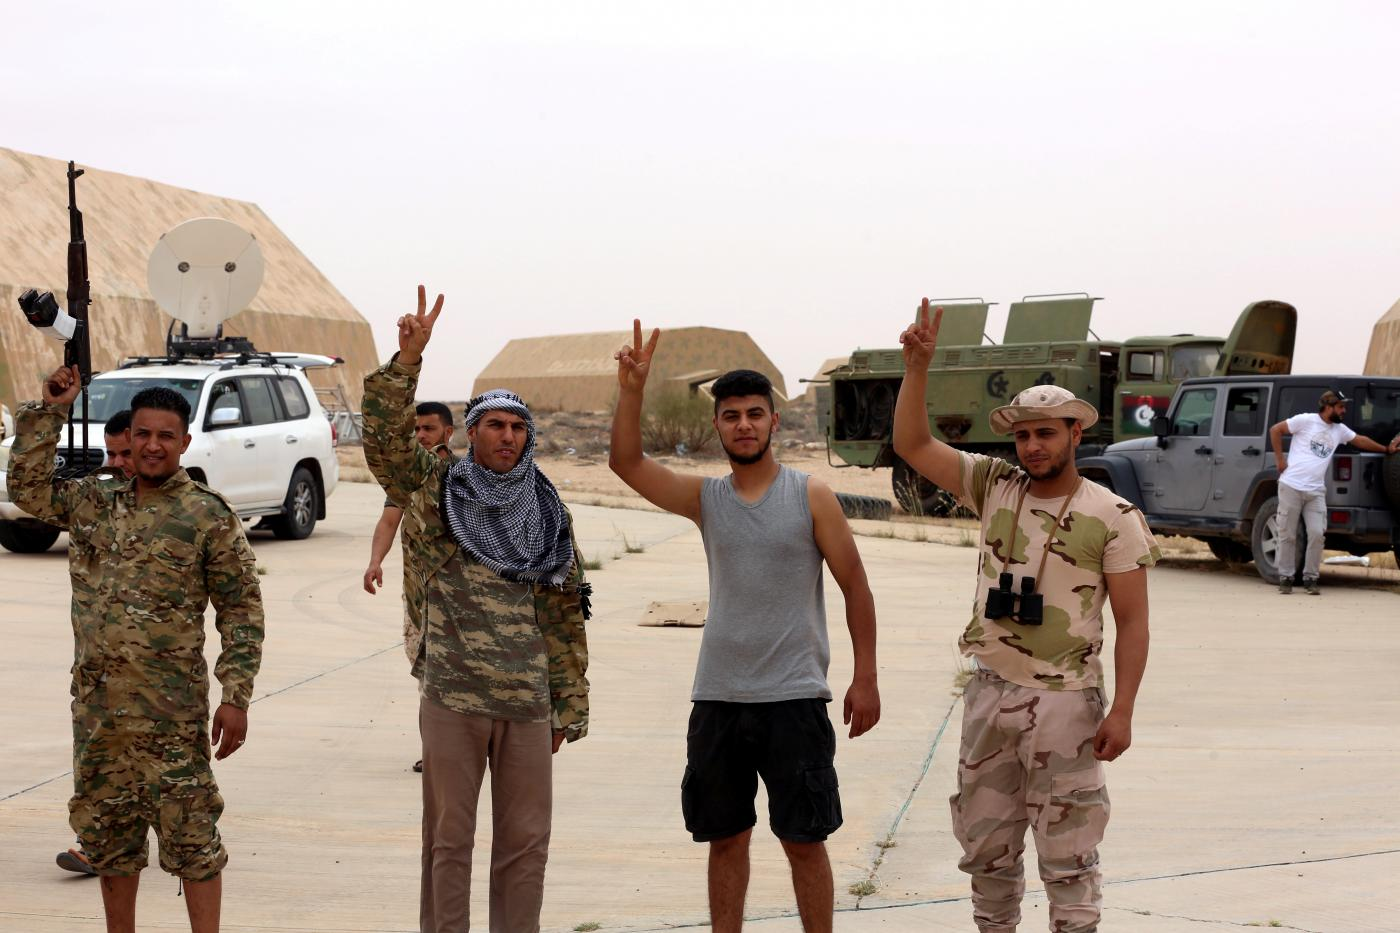 Eastern Libyan forces pull out of parts of Tripoli